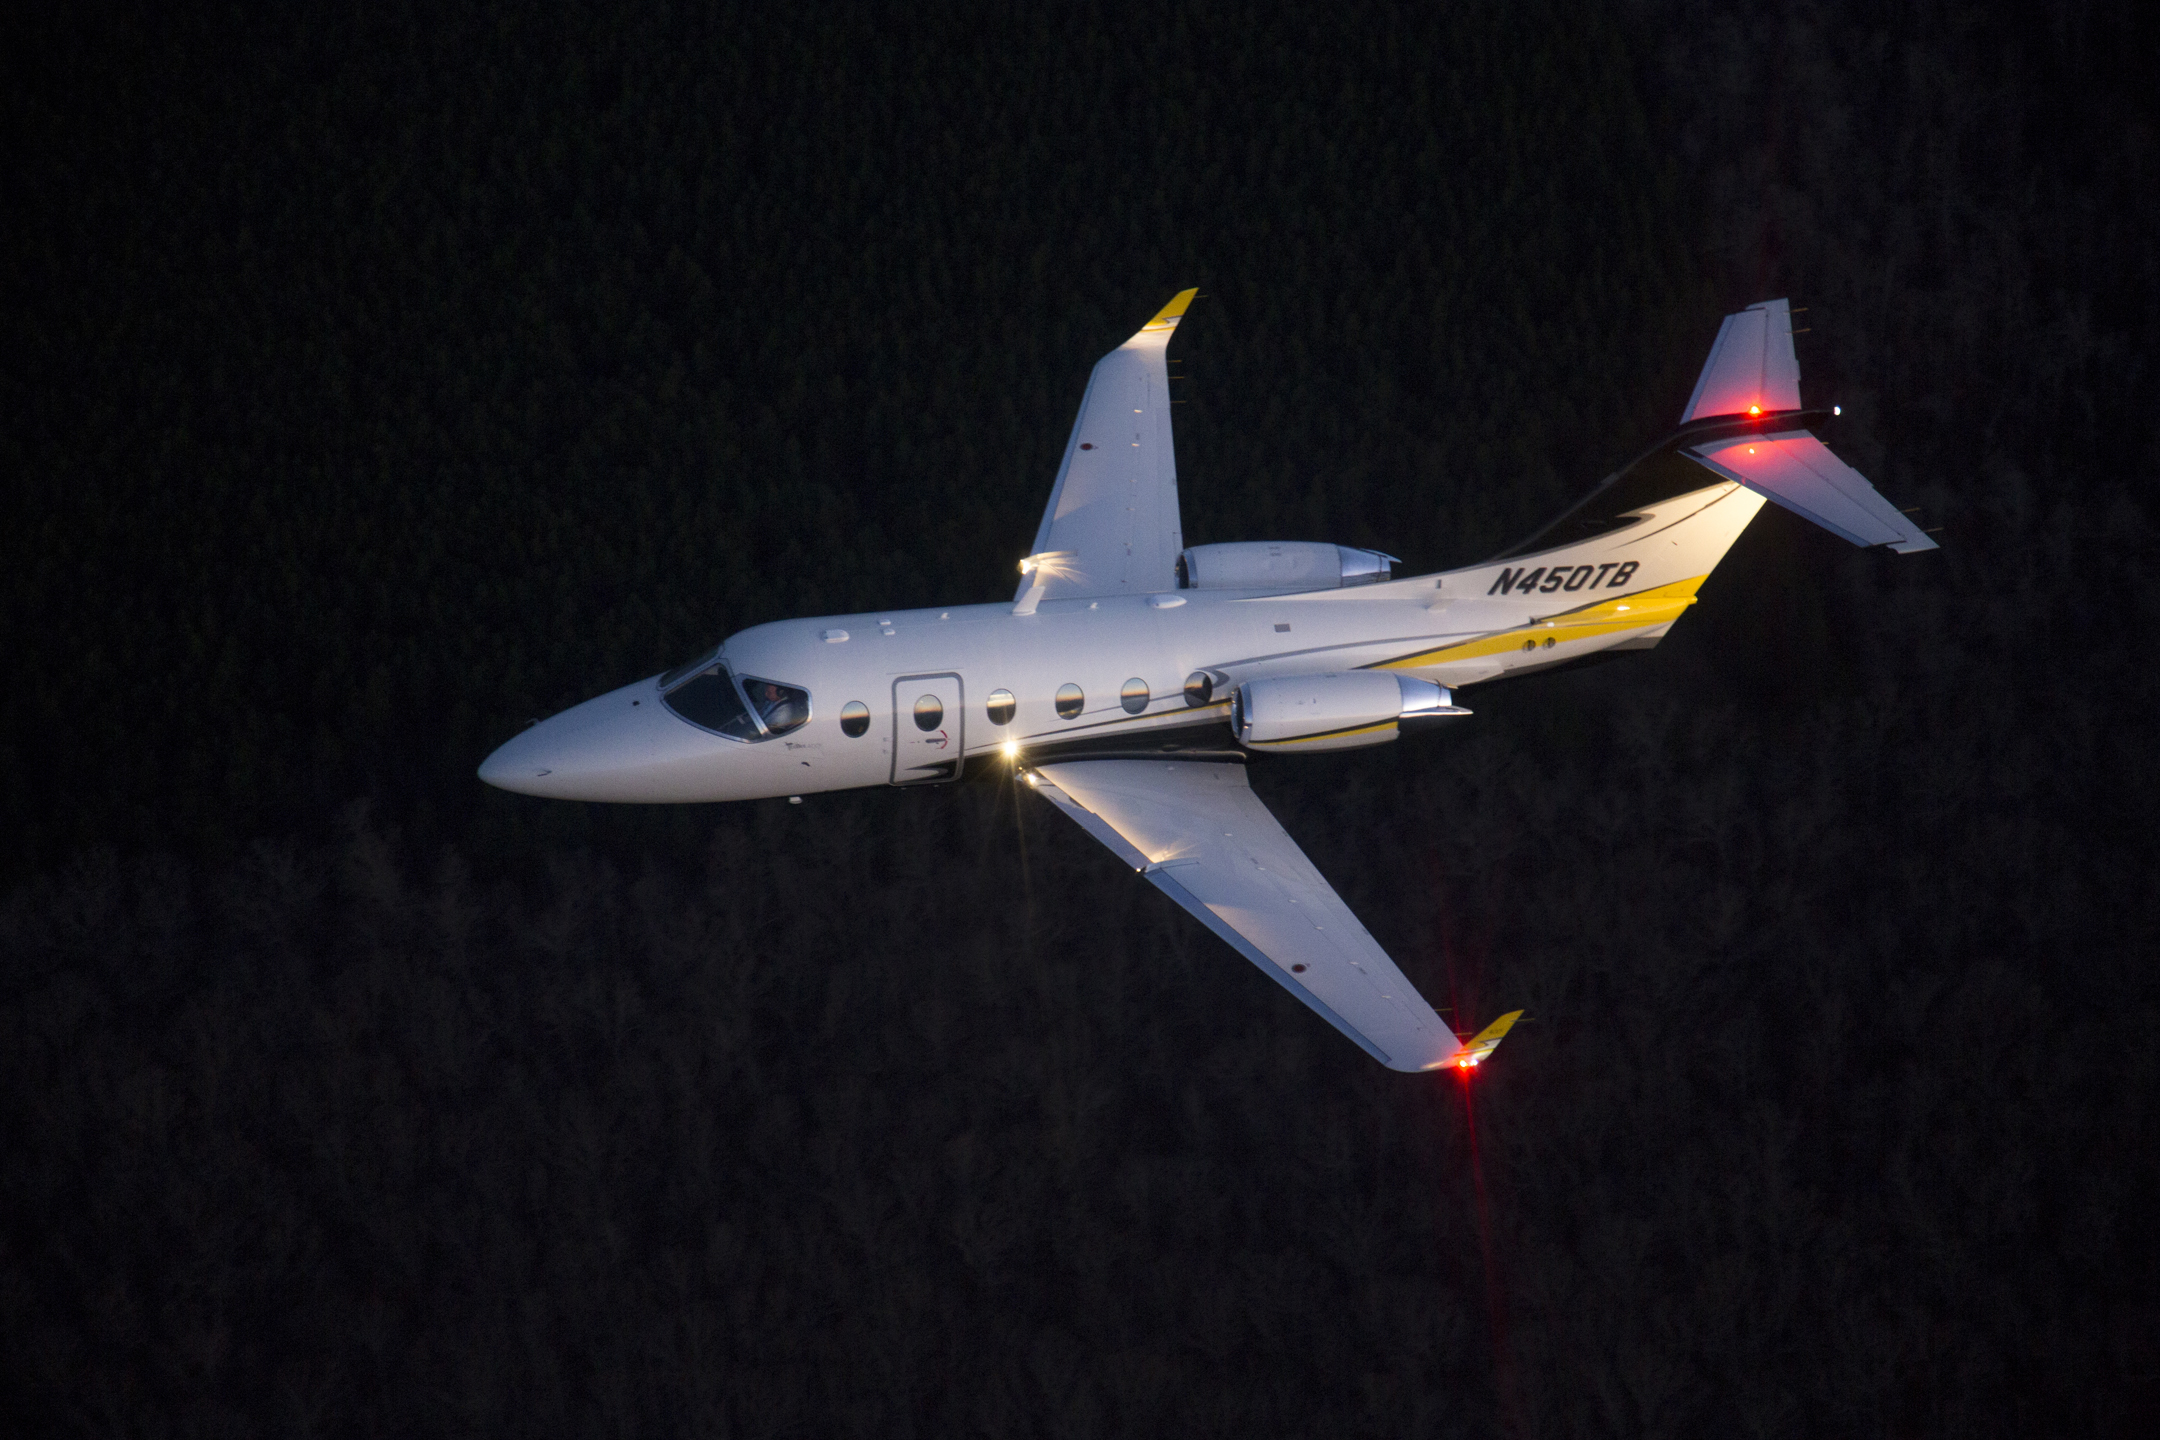 Beechjet dark morning